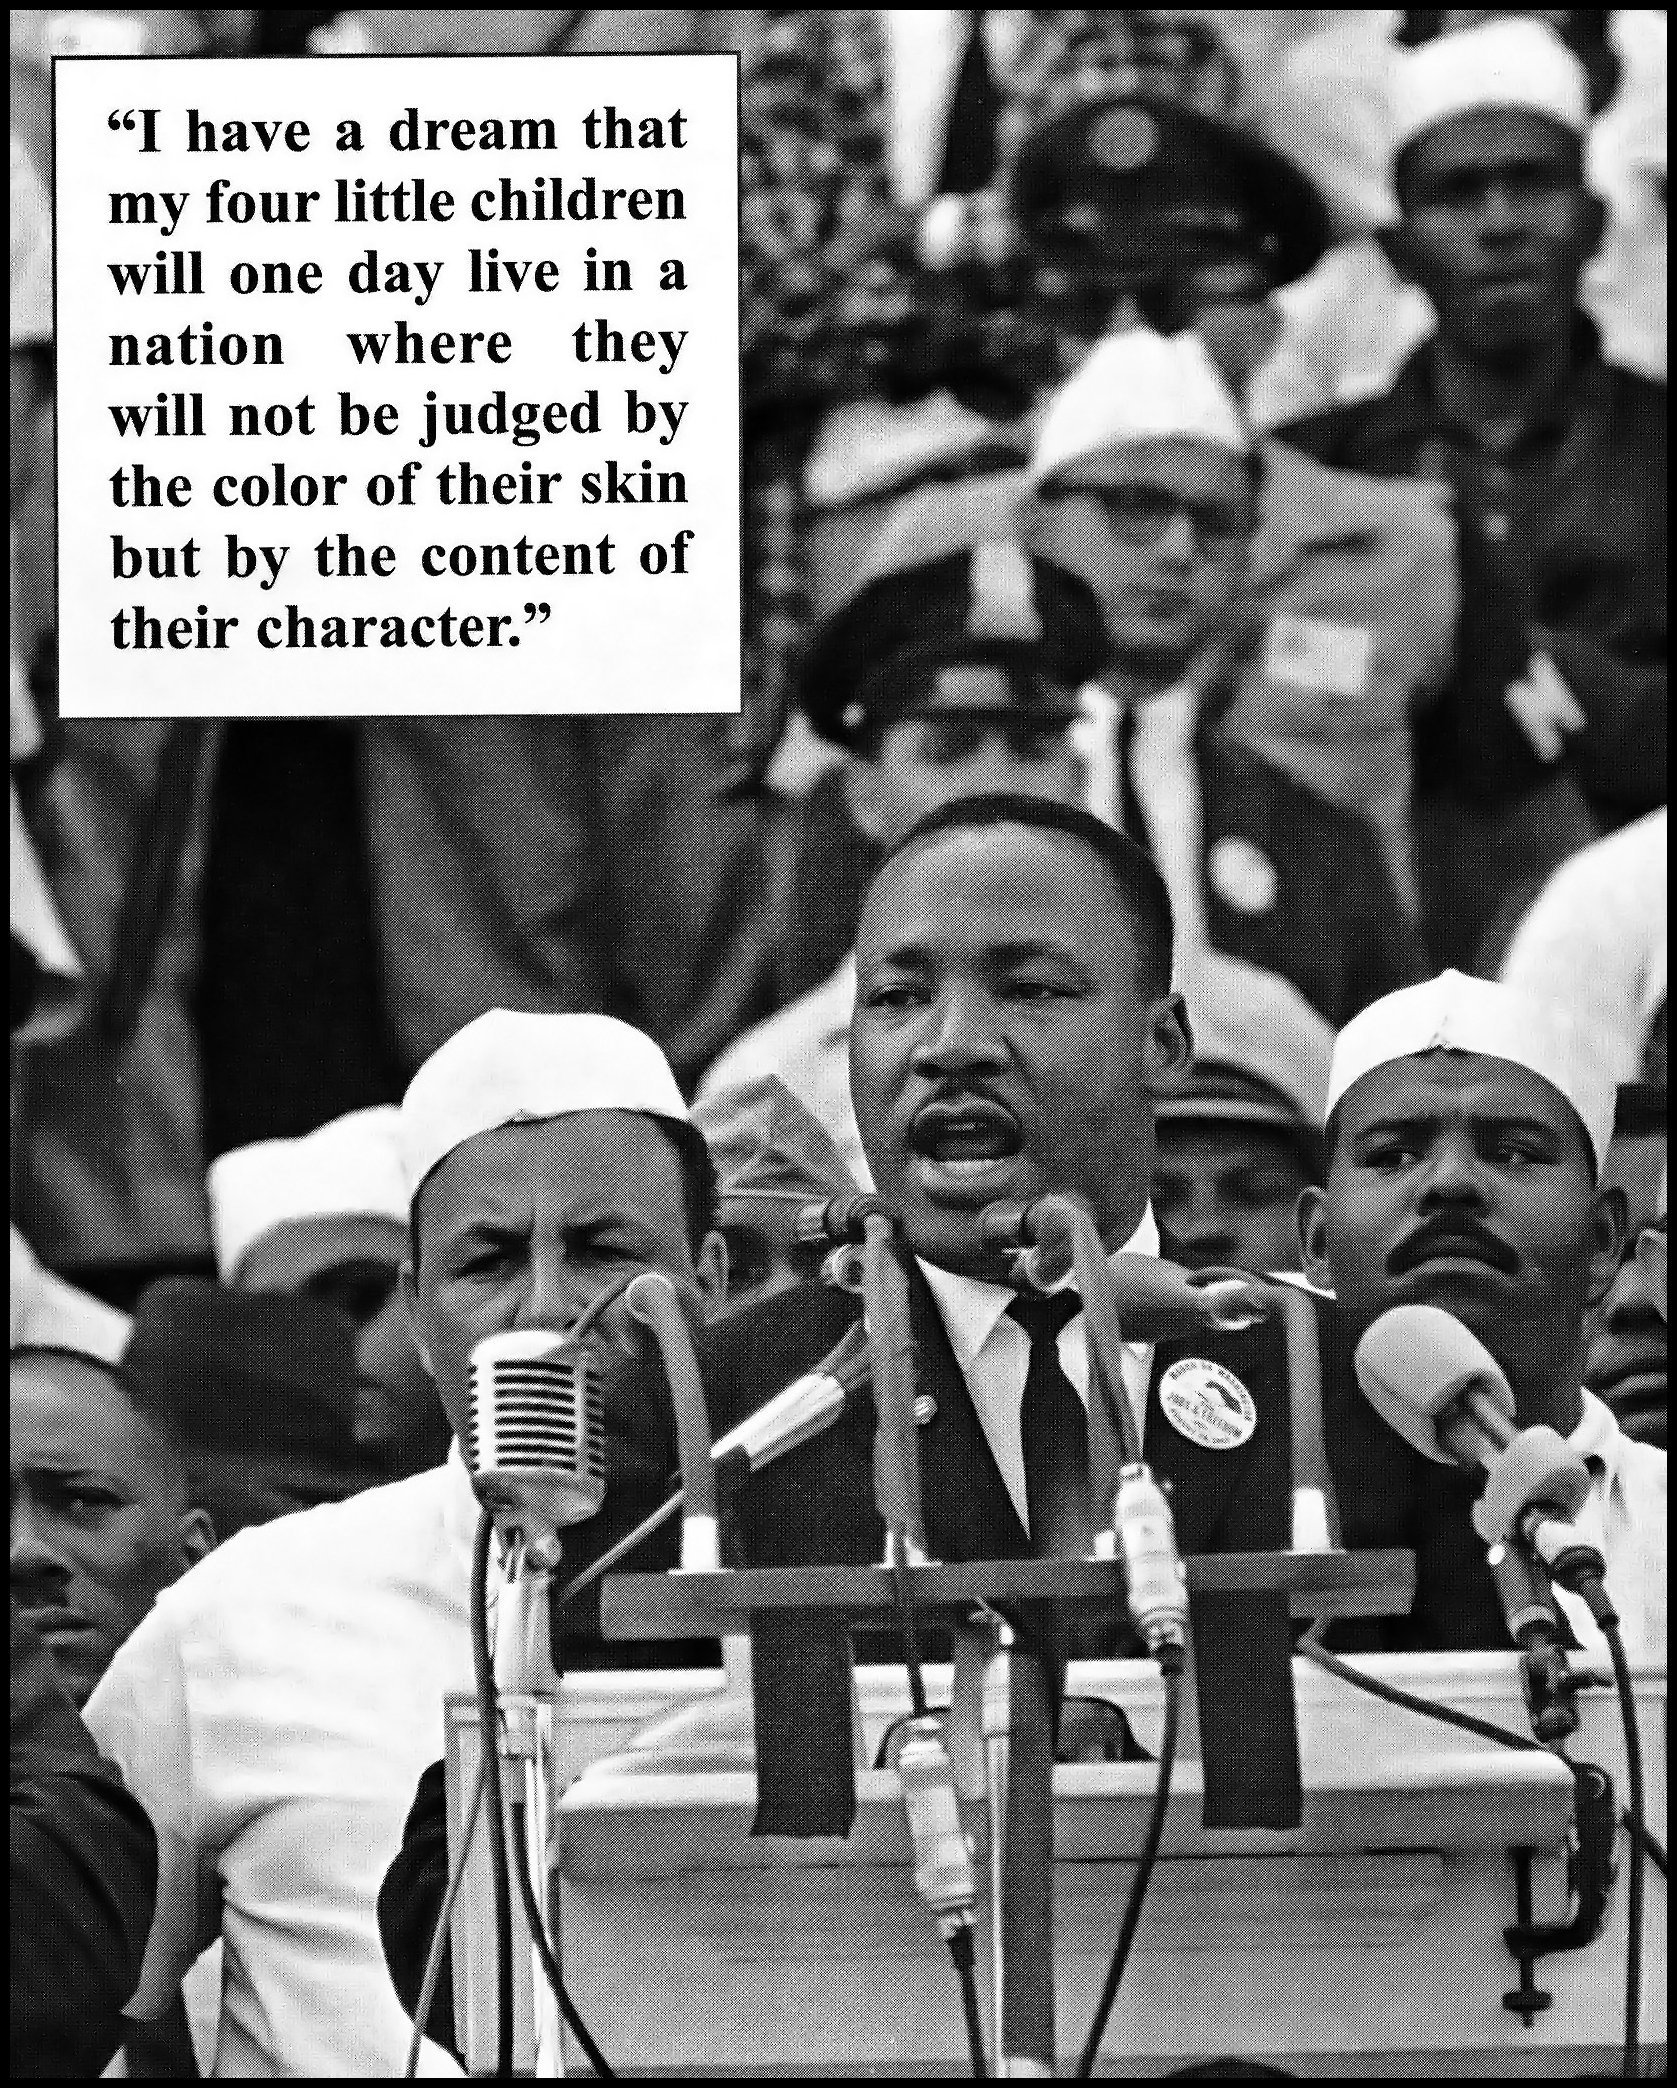 'I Have A Dream' is the popular name given to the public speech by Martin Luther King, Jr., when he spoke of his desire for a future where blacks and whites among others would coexist harmoniously as equals. King's delivery of the speech on August 28, 1963, from the steps of the Lincoln Memorial during the March on Washington for Jobs and Freedom, was a defining moment of the American Civil Rights Movement.Photo: Tony Fischer. (CC BY 2.0).